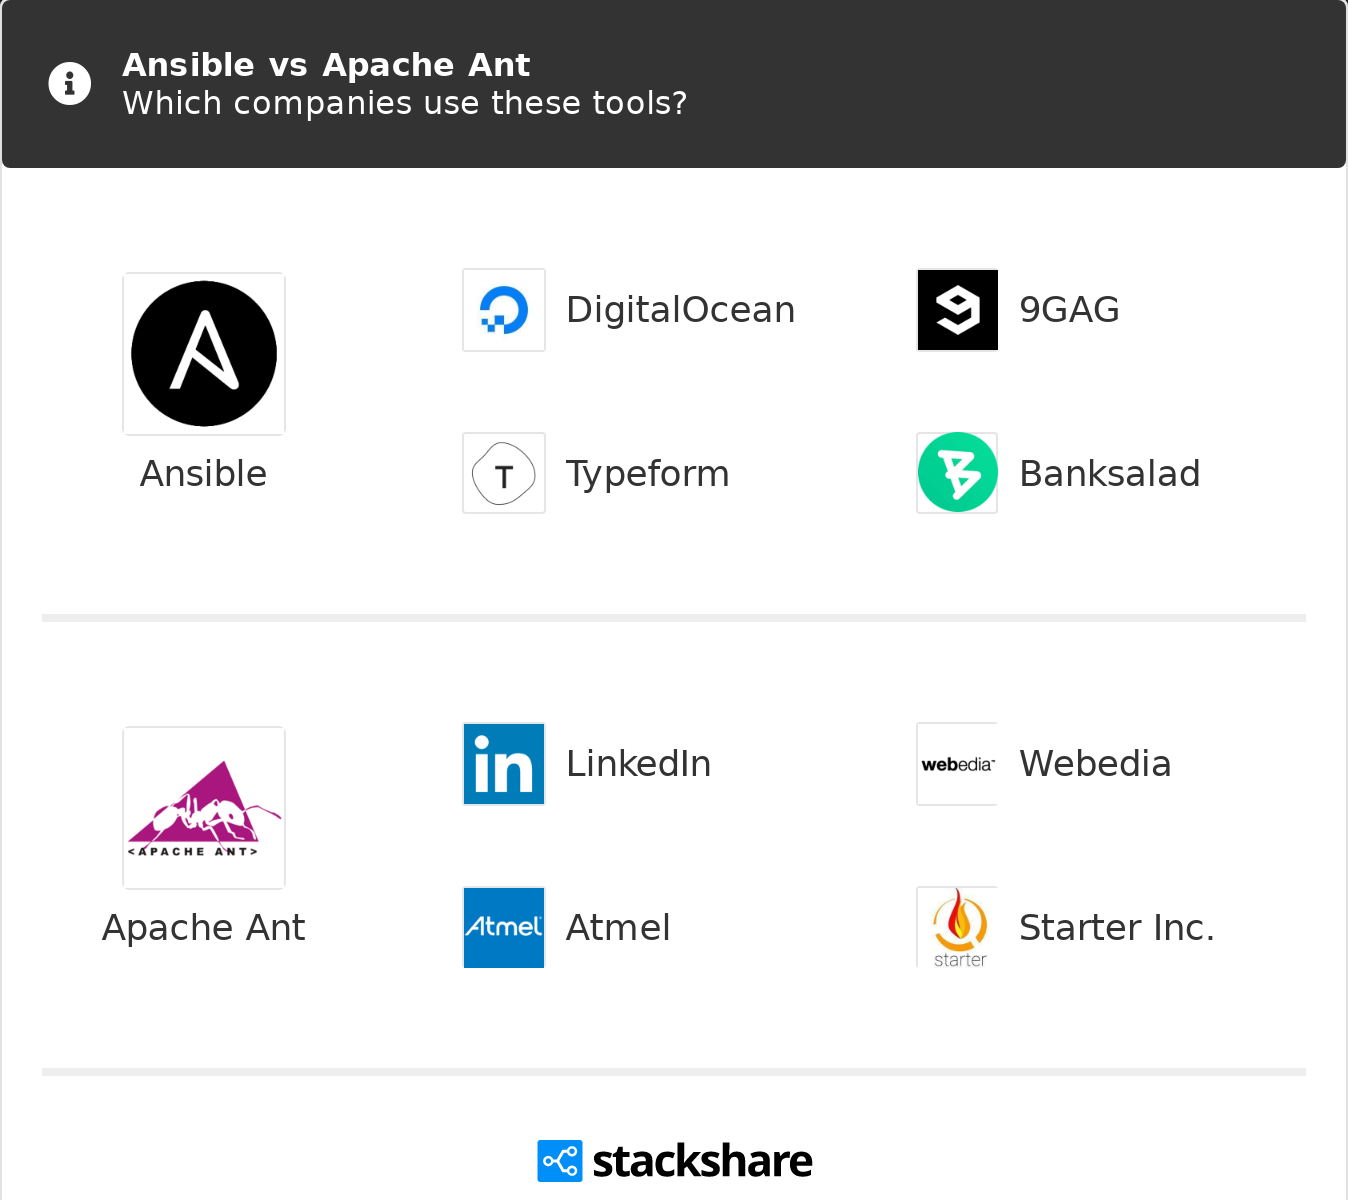 Ansible vs Apache Ant | What are the differences?